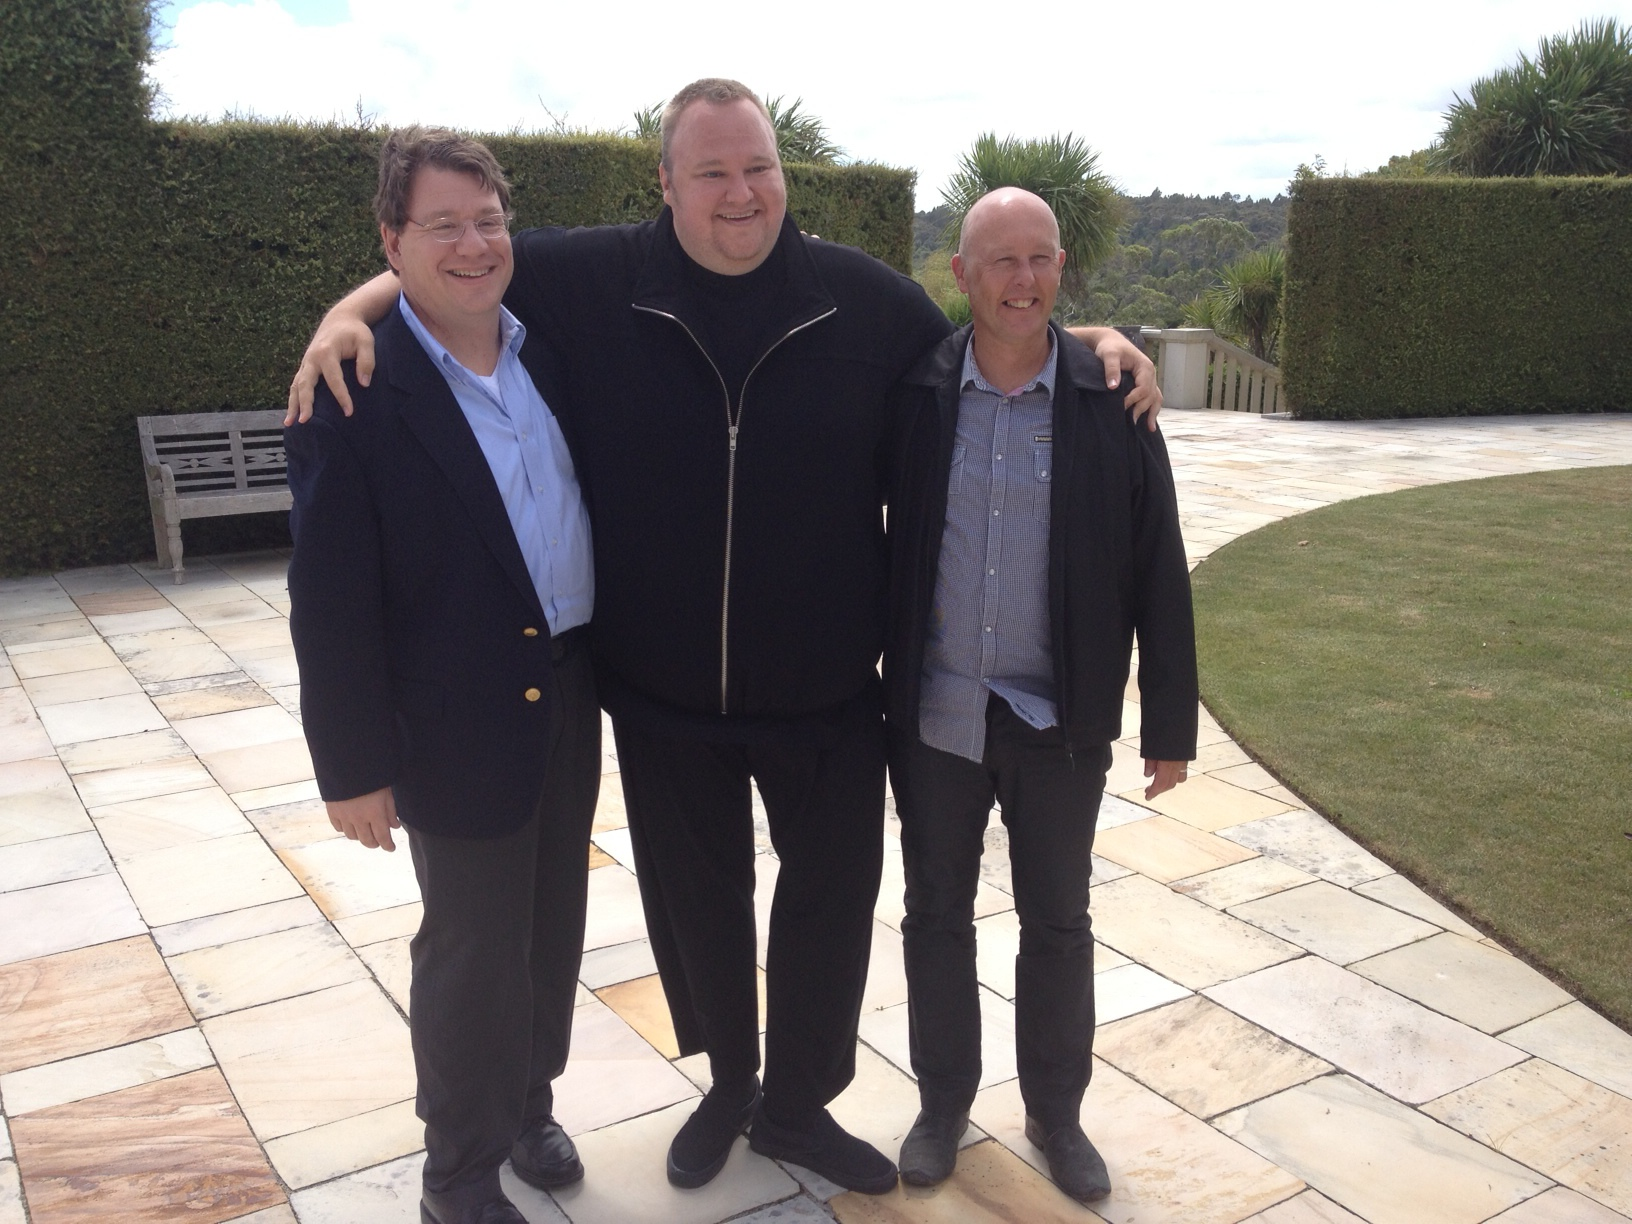 Ira P. Rothken, Kim Dotcom, and Rick Shera in Coatesville, New Zealand January 2013